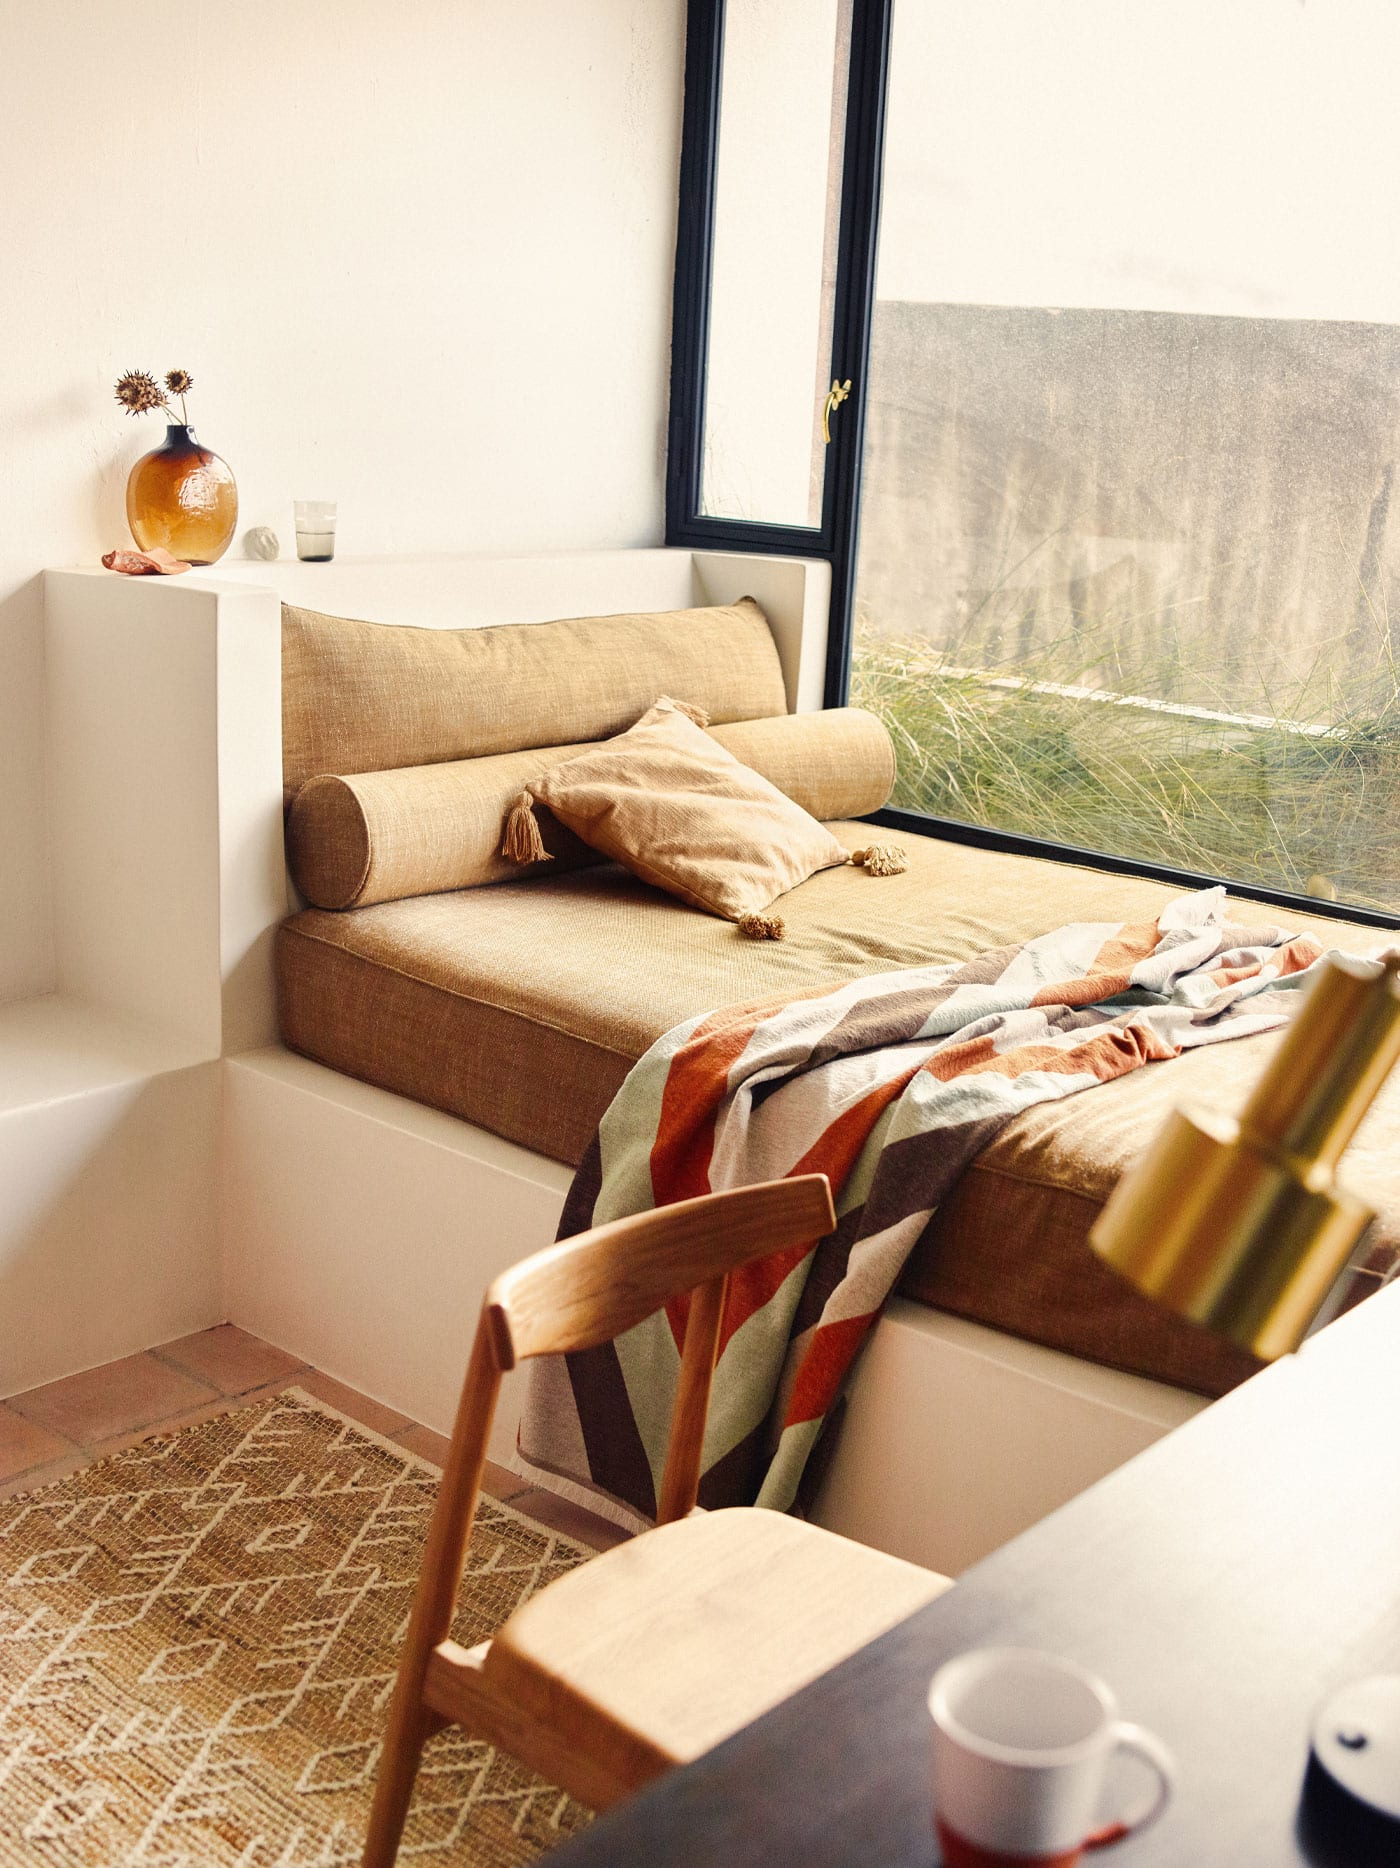 Built-in daybed with a comfy blanket